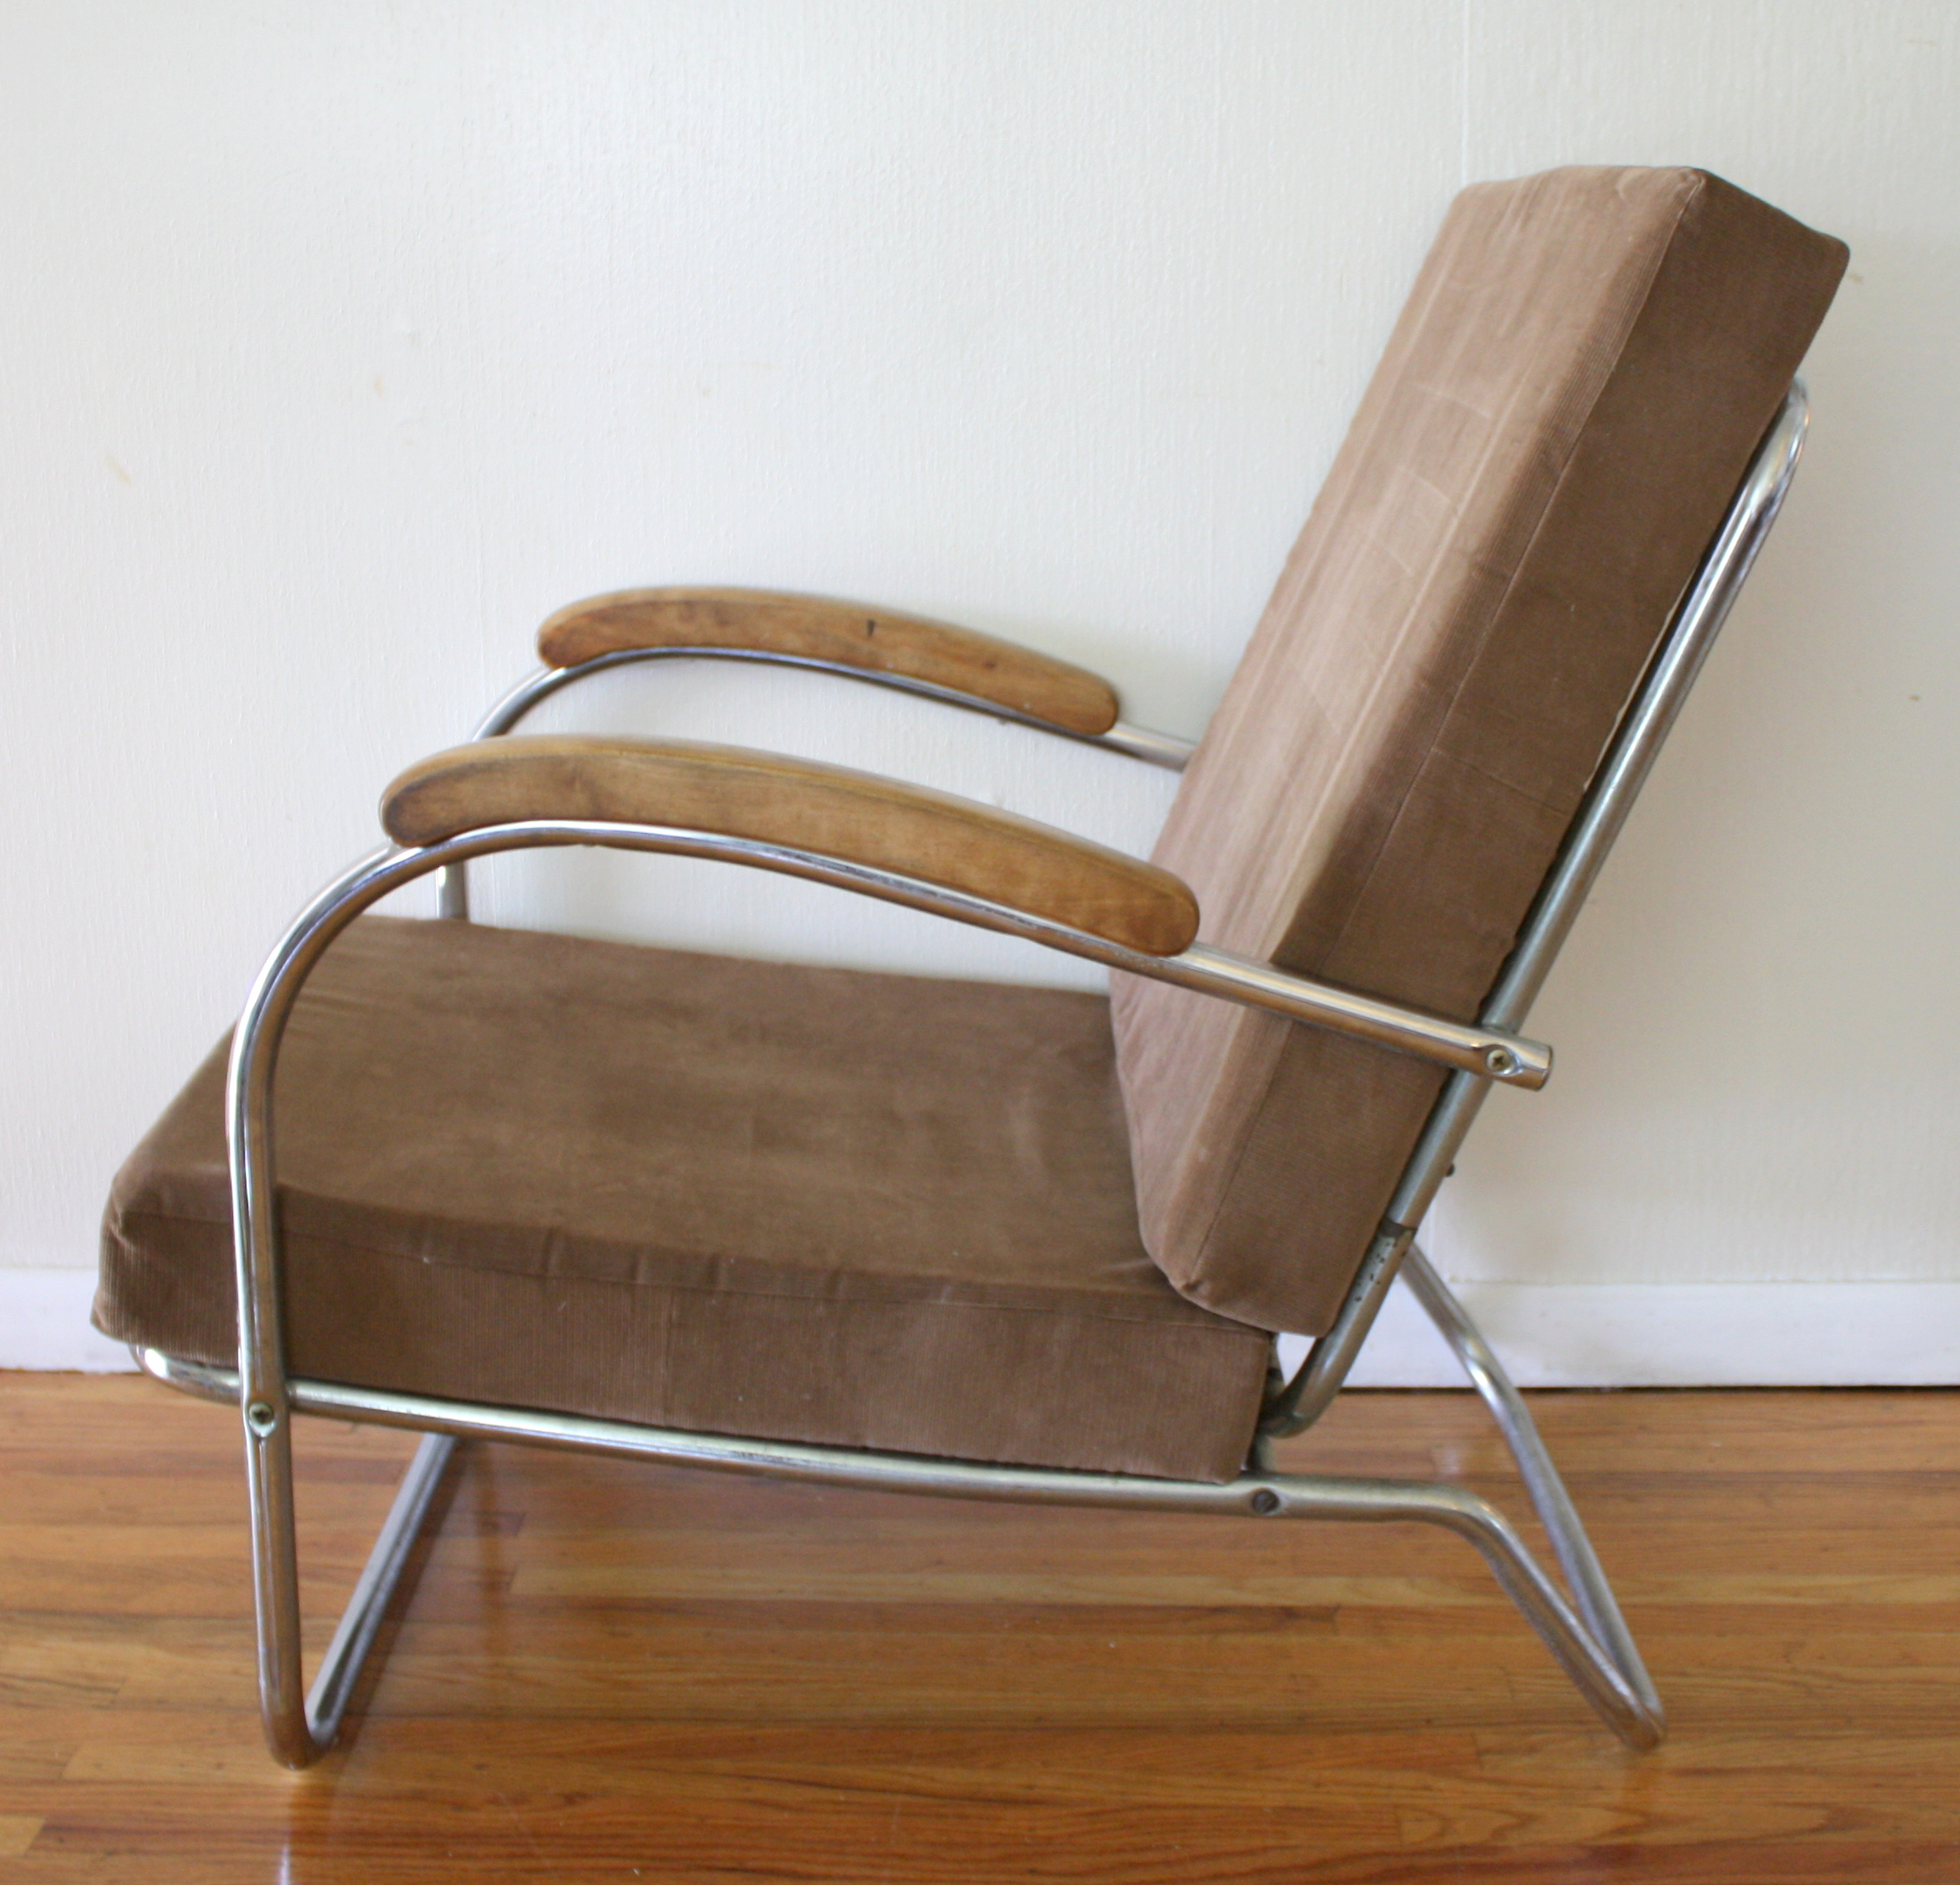 vintage art deco furniture. Vintage Art Deco Furniture. Chair 3 Furniture D